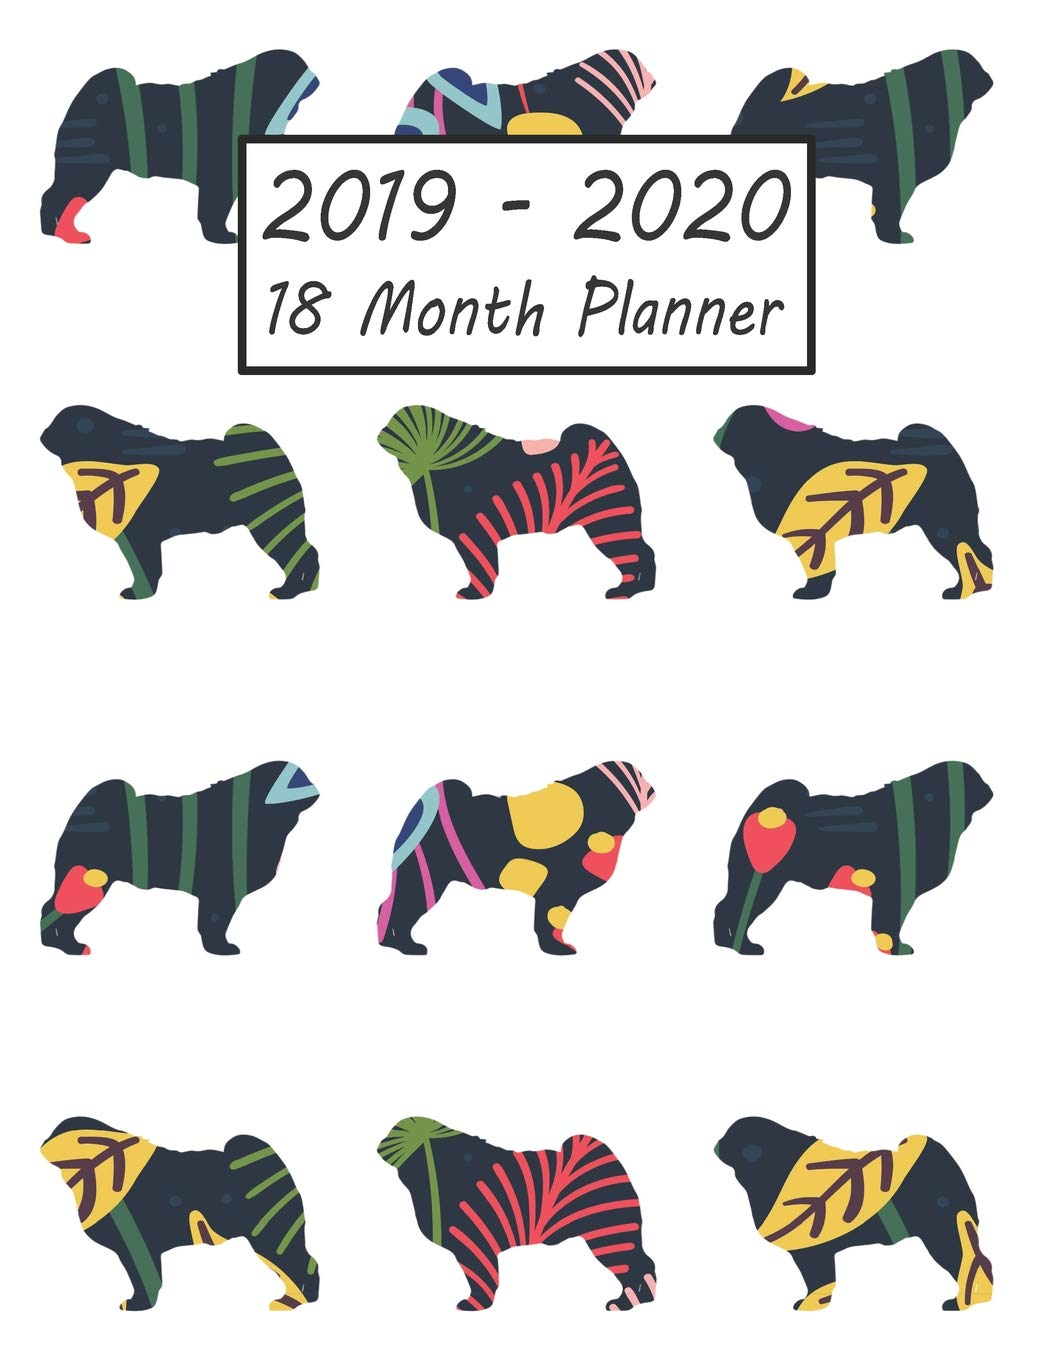 2019 - 2020 18 Month Planner: Pug Dog Weekly and Monthly ...